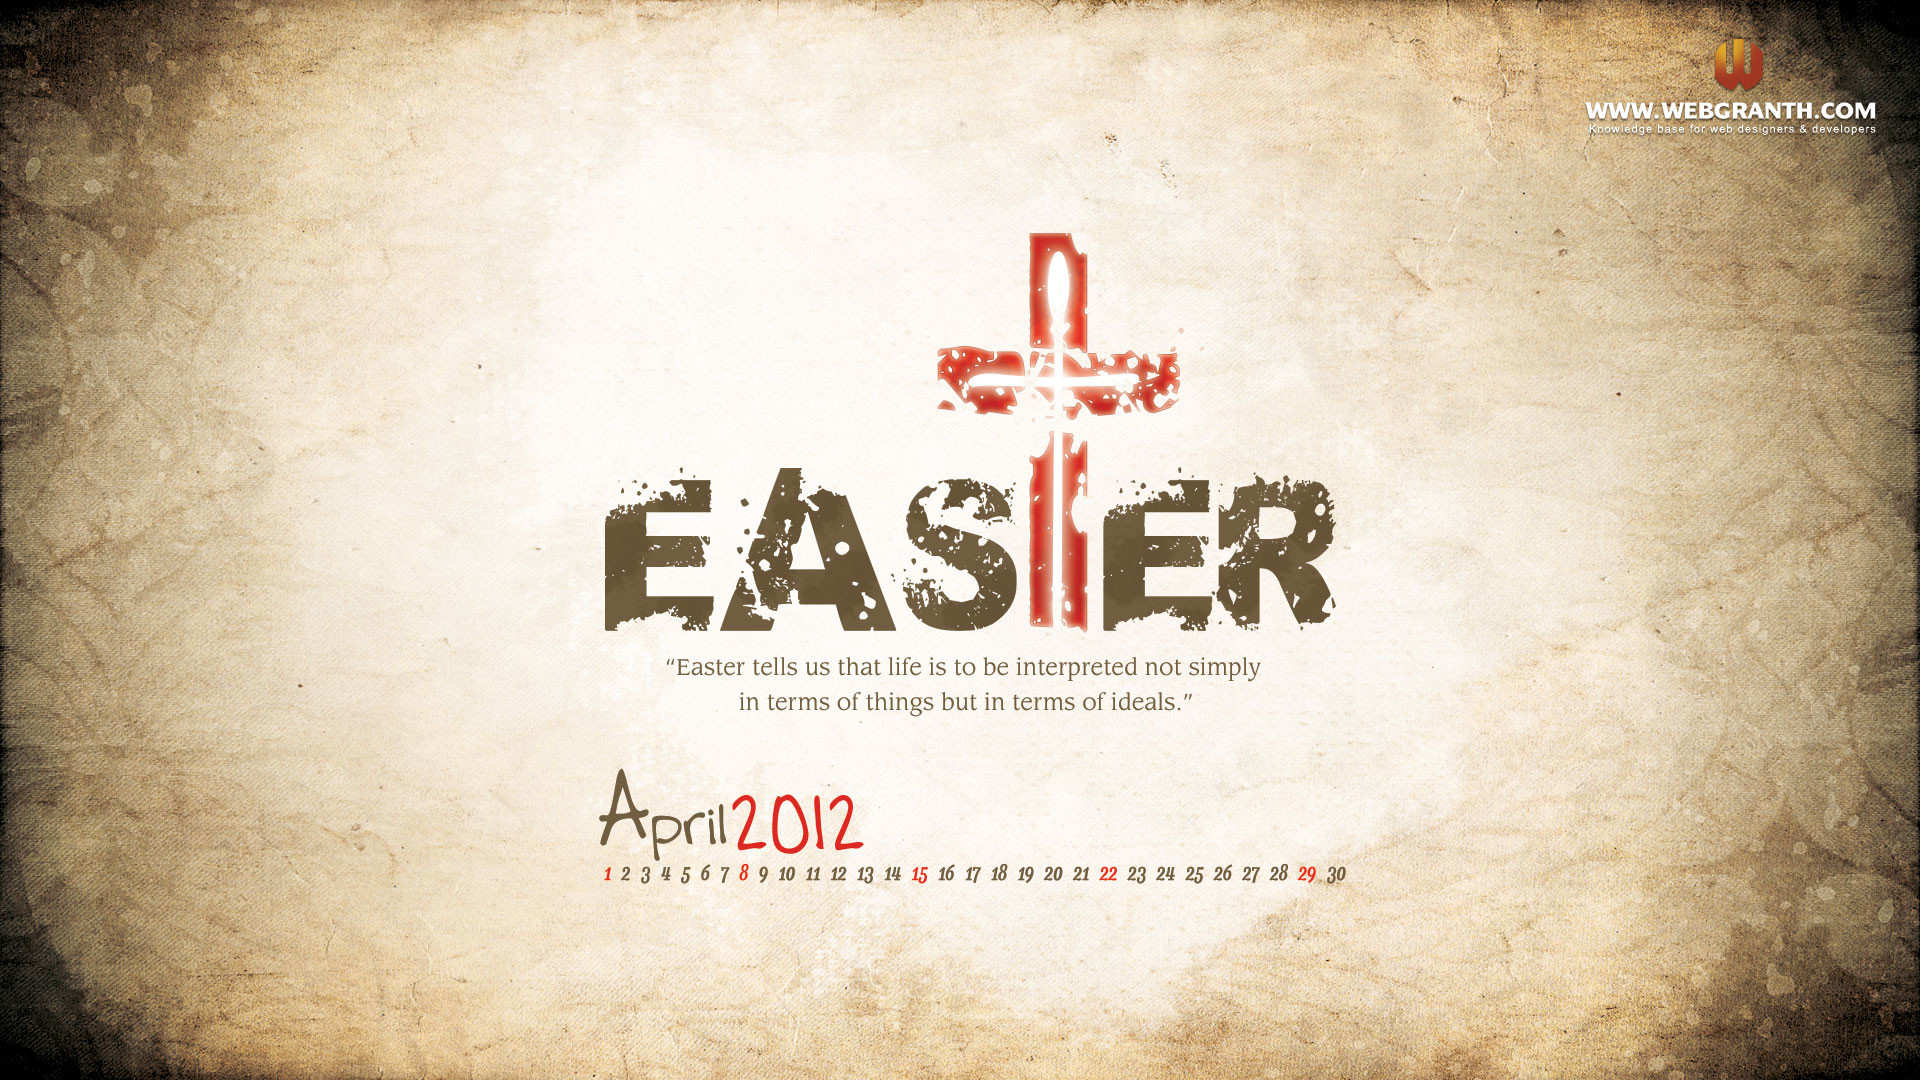 1920x1080 Cross easter wallpaper 2012 pictures, images